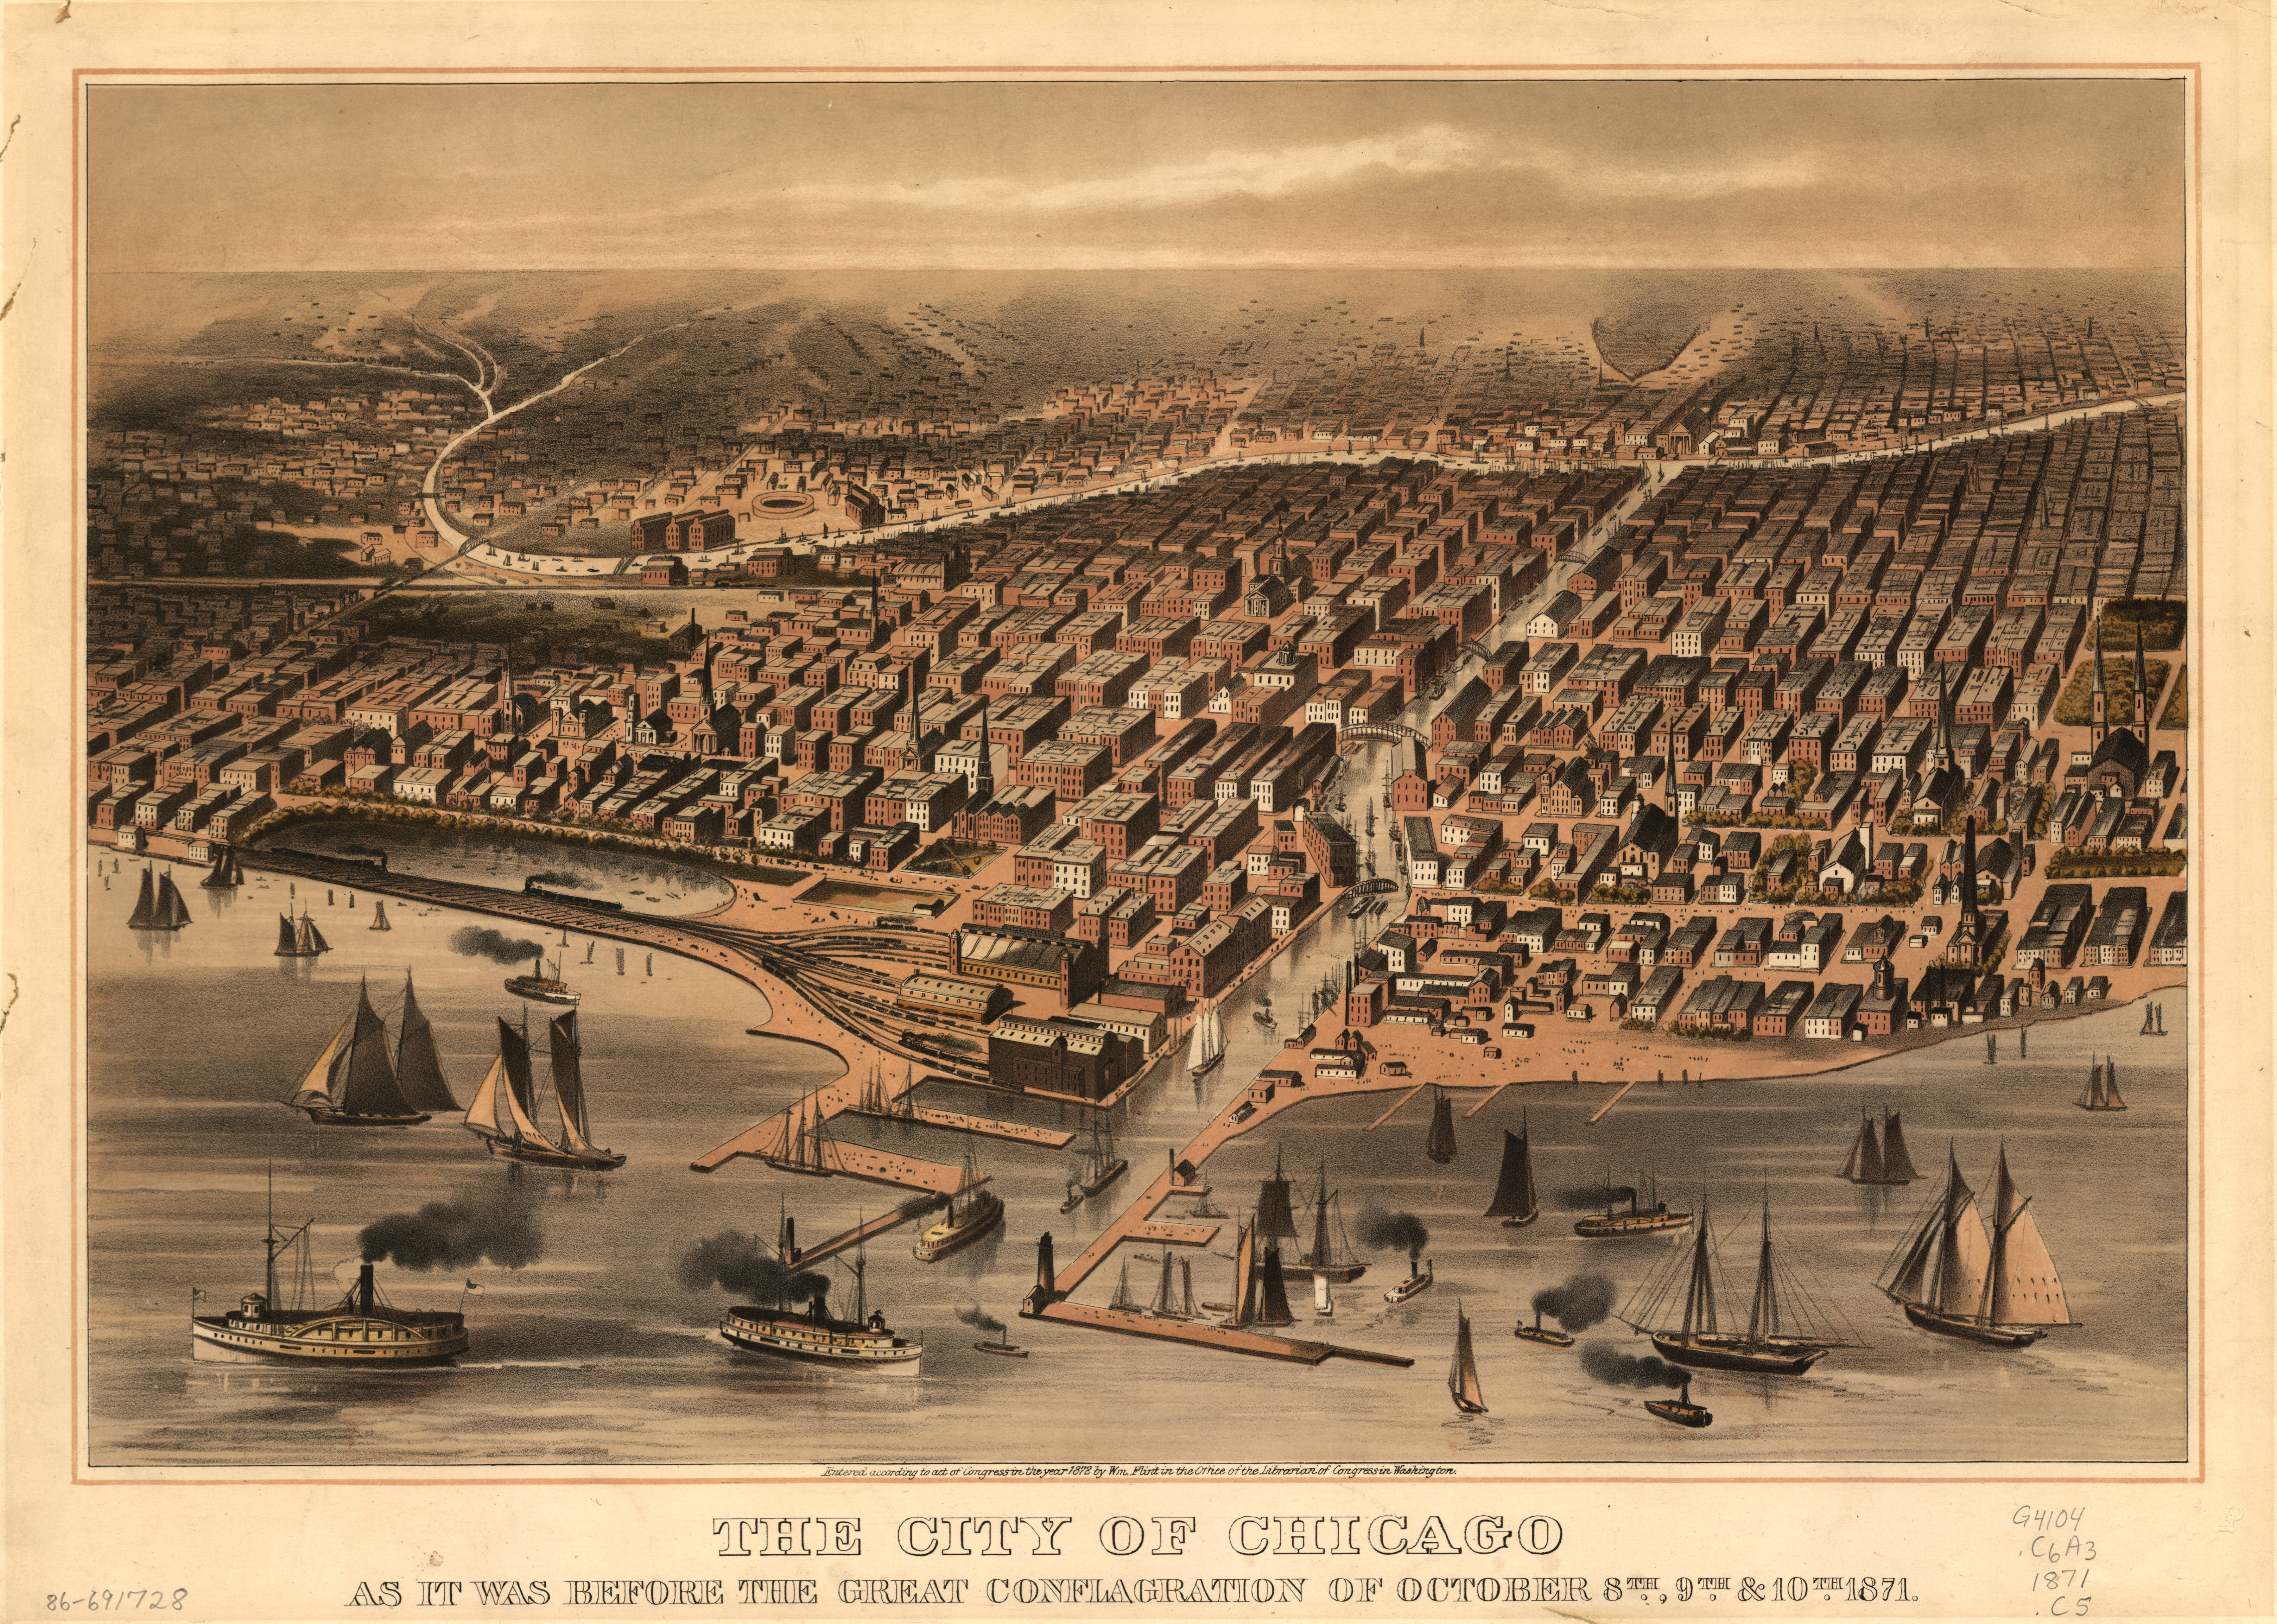 The Great Chicago Fire - The City of Chicago as it was Before the Great Chicago Fire (1872)